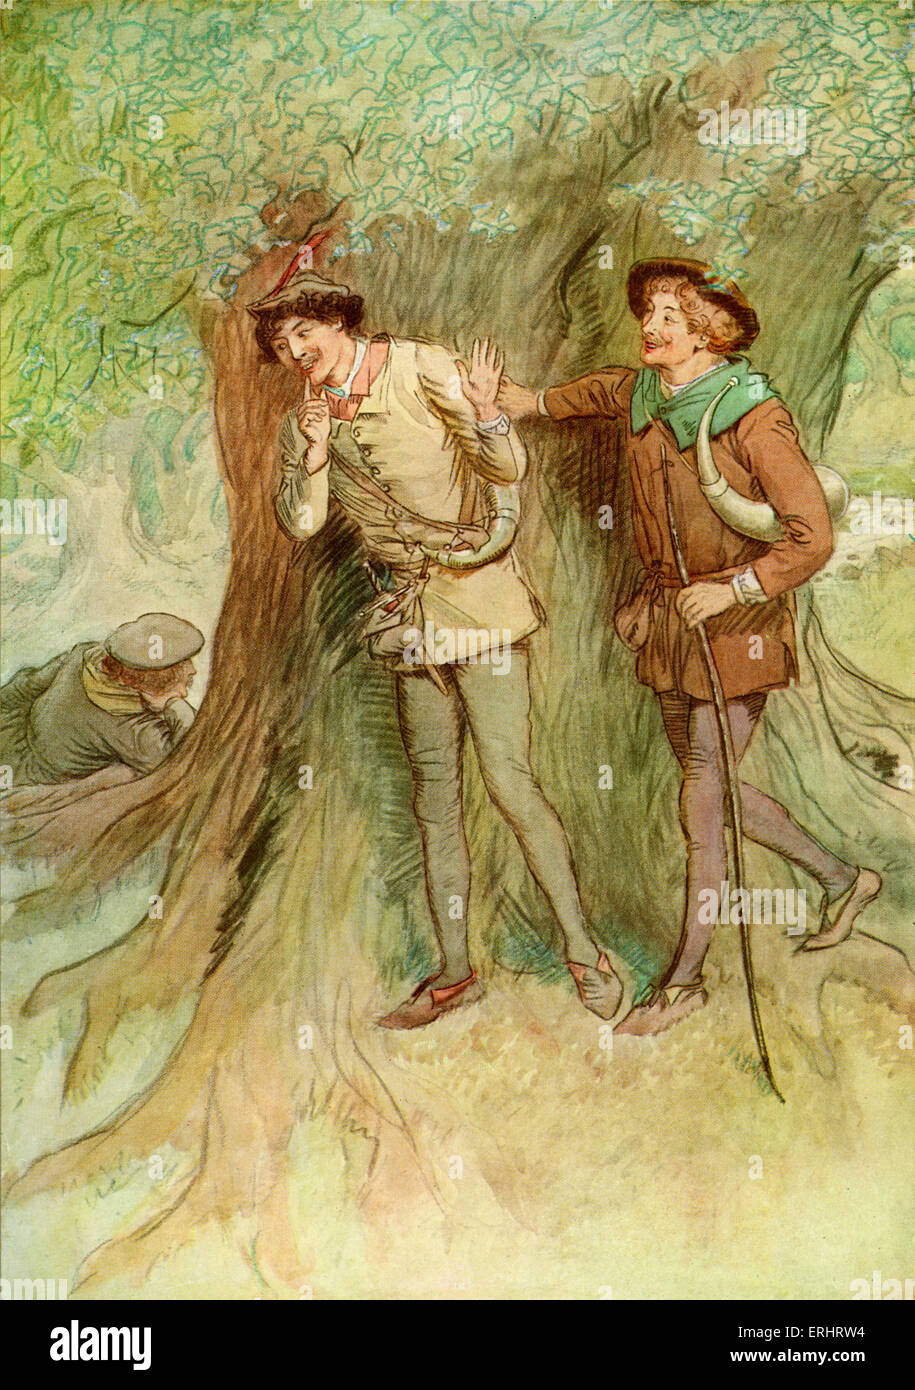 william shakespeare as you like it Written c 1599-1600, as you like it is a joyful comedy set in and around the forest of arden, where several of the main characters have escaped from persecution at court.